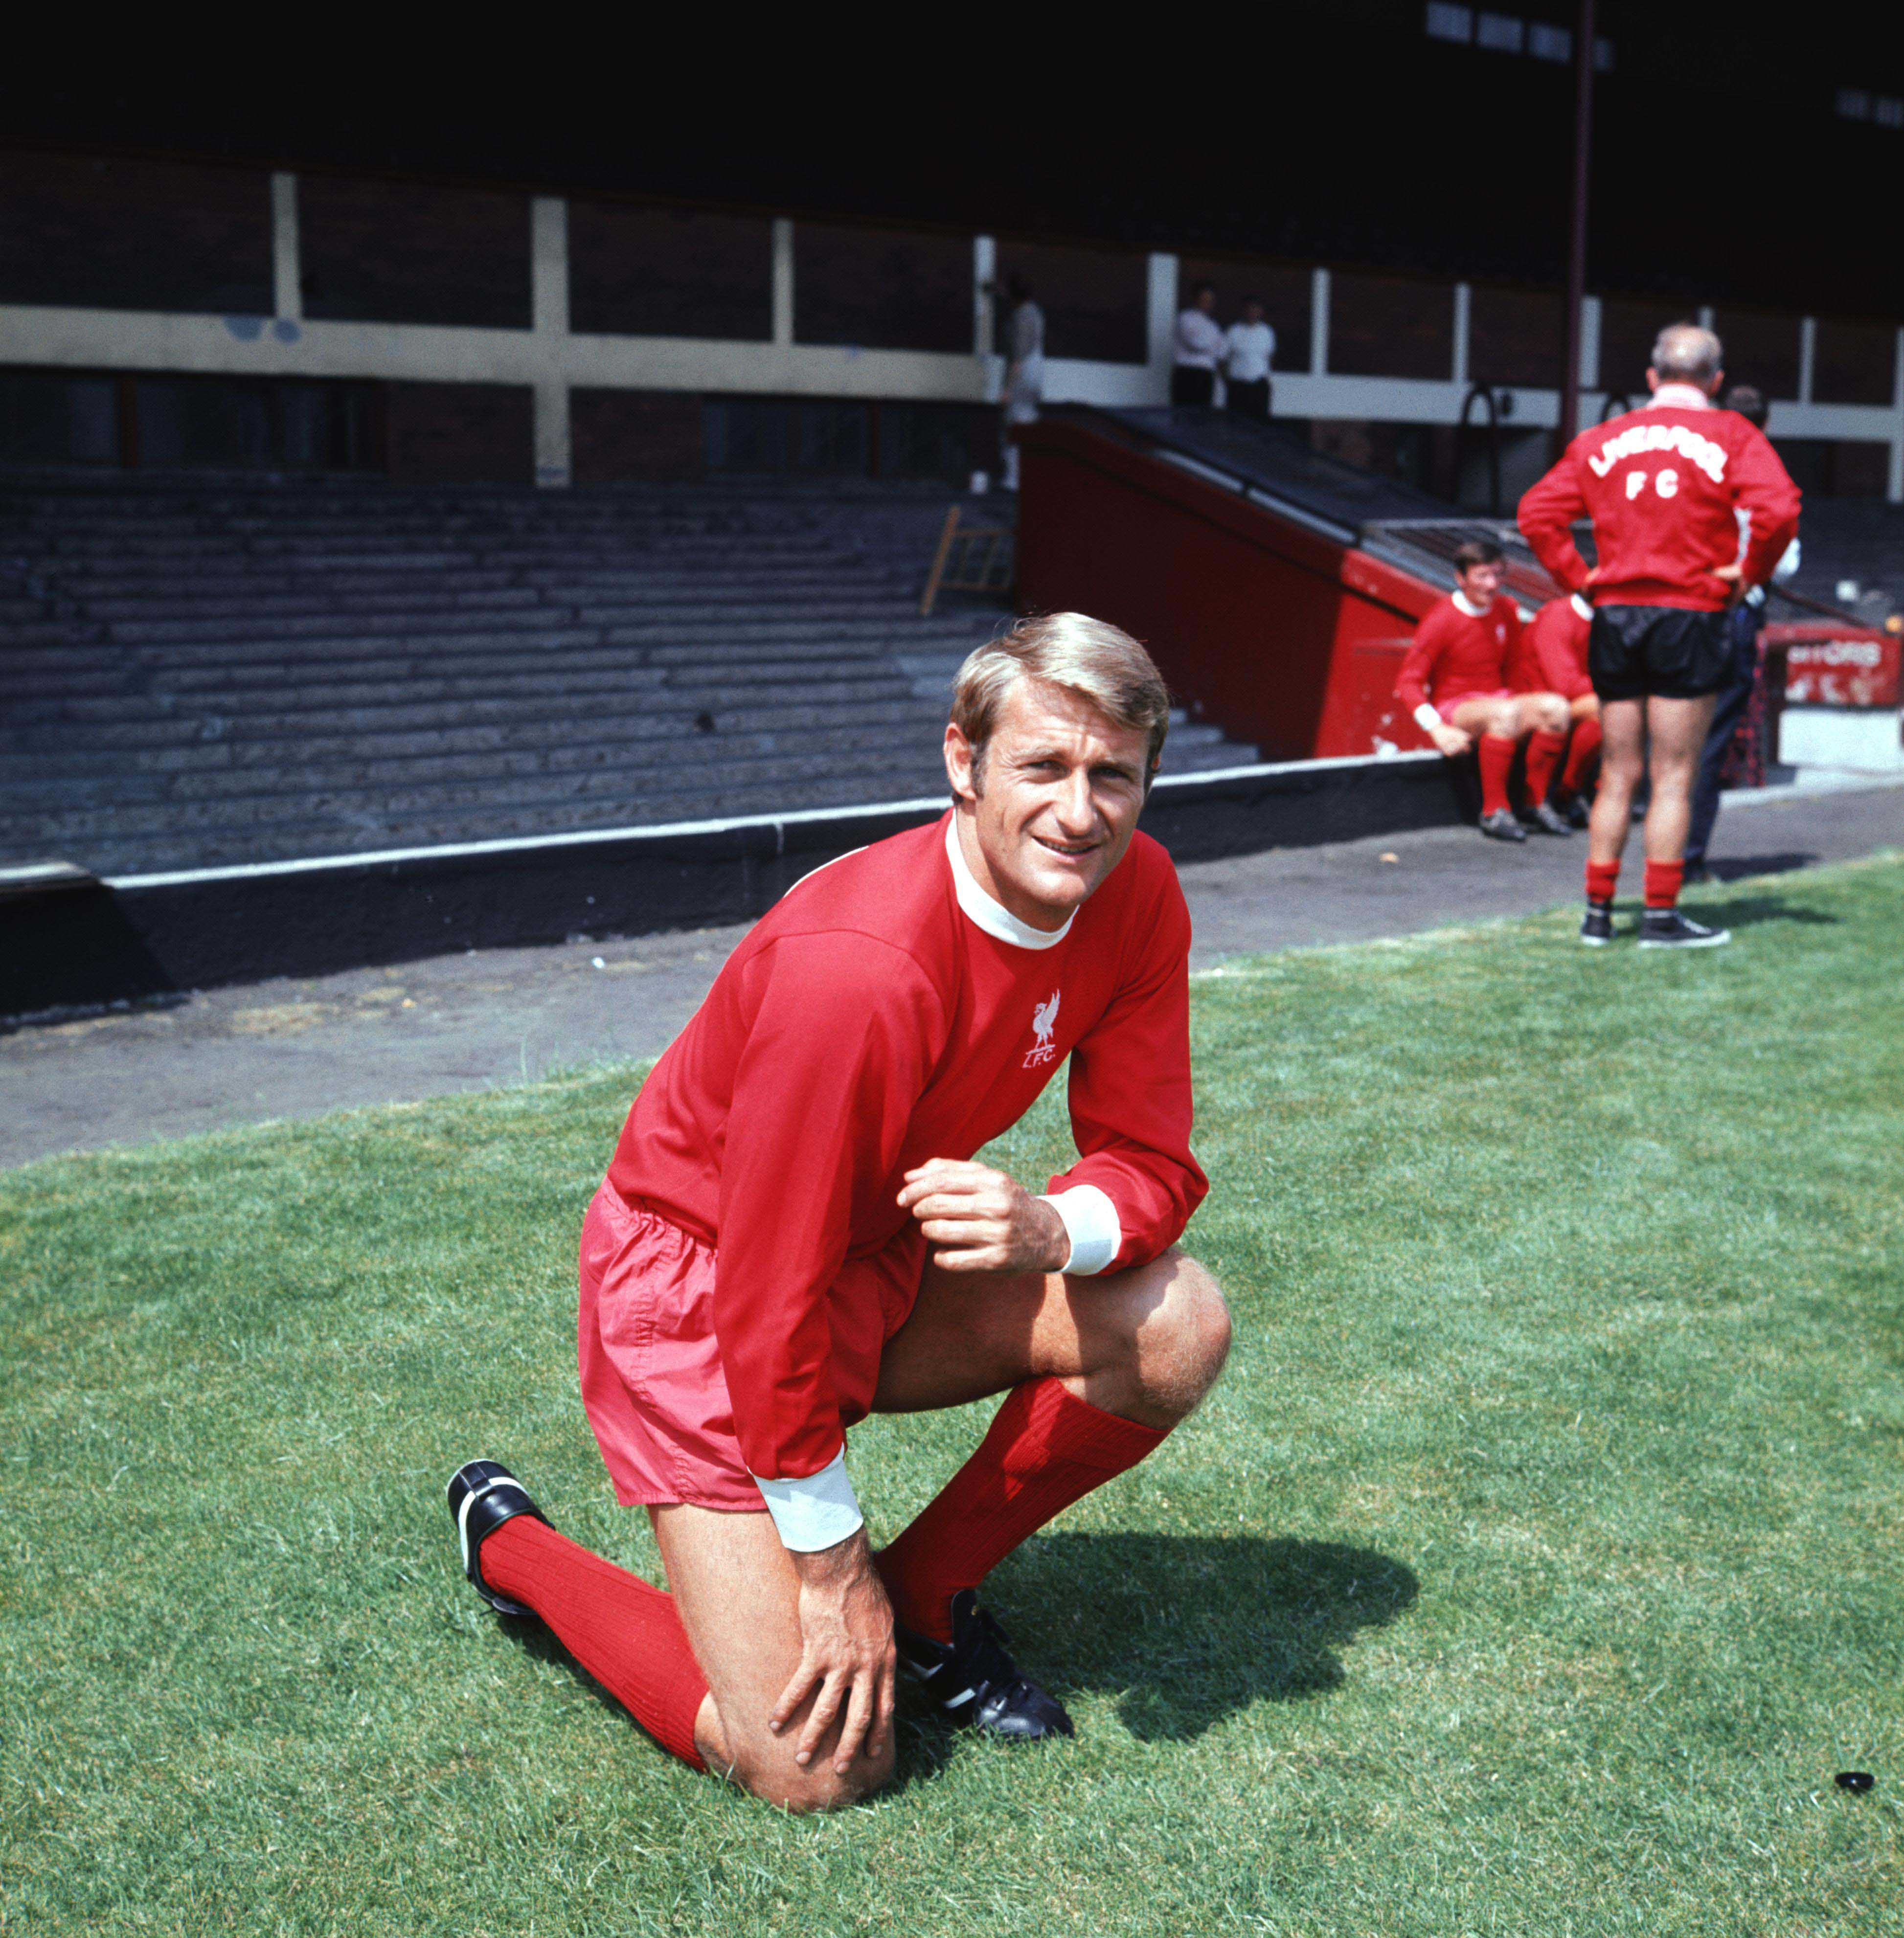 INTERVIEW: ROGER HUNT – A TRUE LIVERPOOL LEGEND